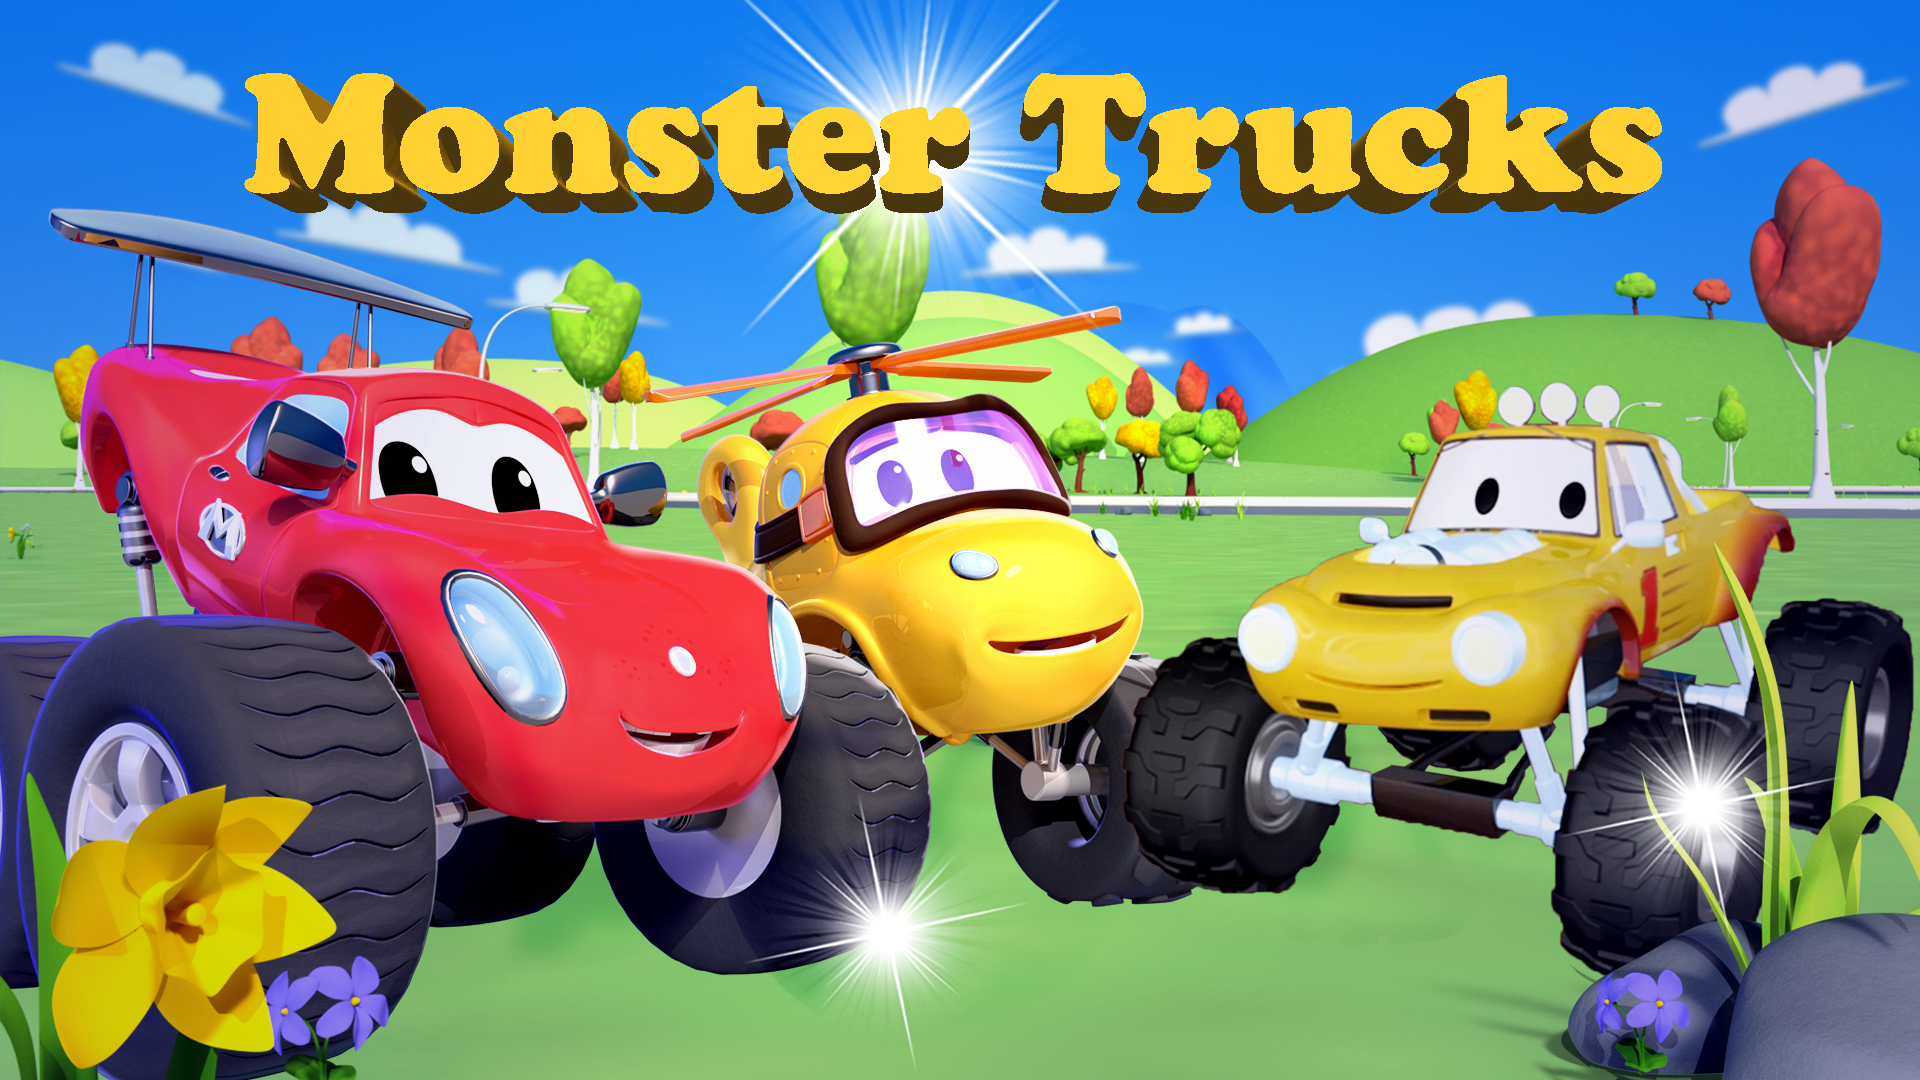 Monster Trucks - Truck Cartoon for Kids